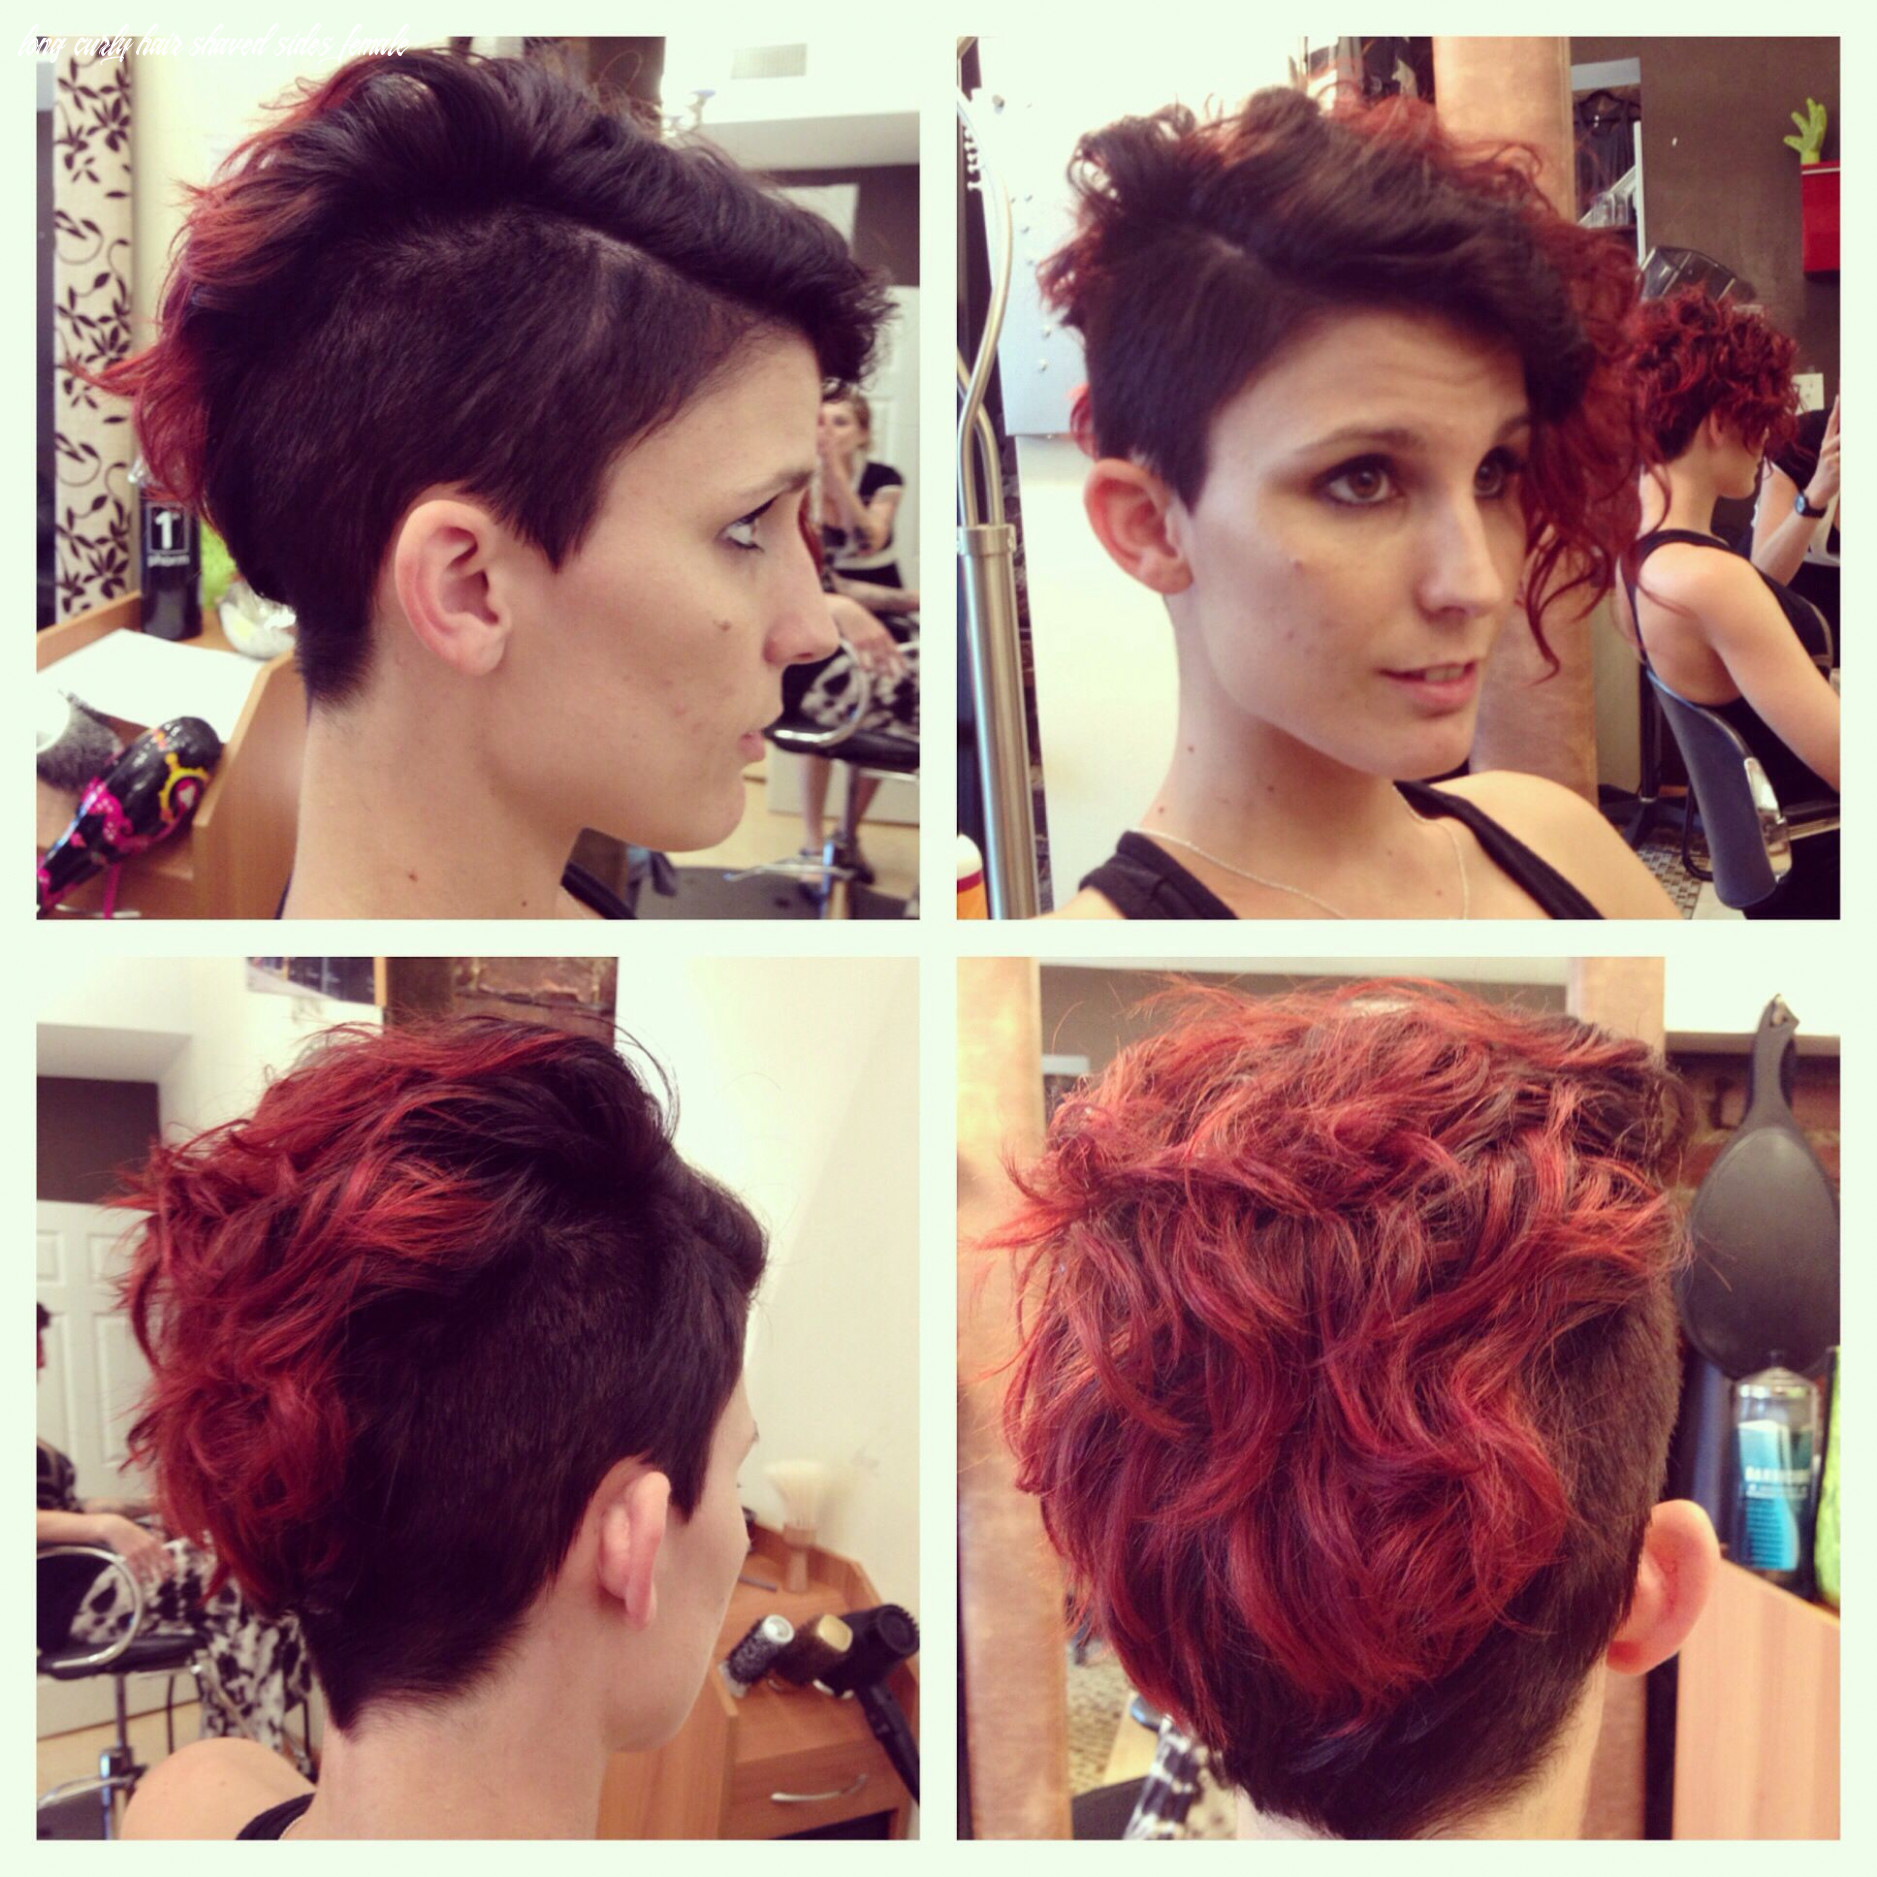 Pin on hair by me long curly hair shaved sides female